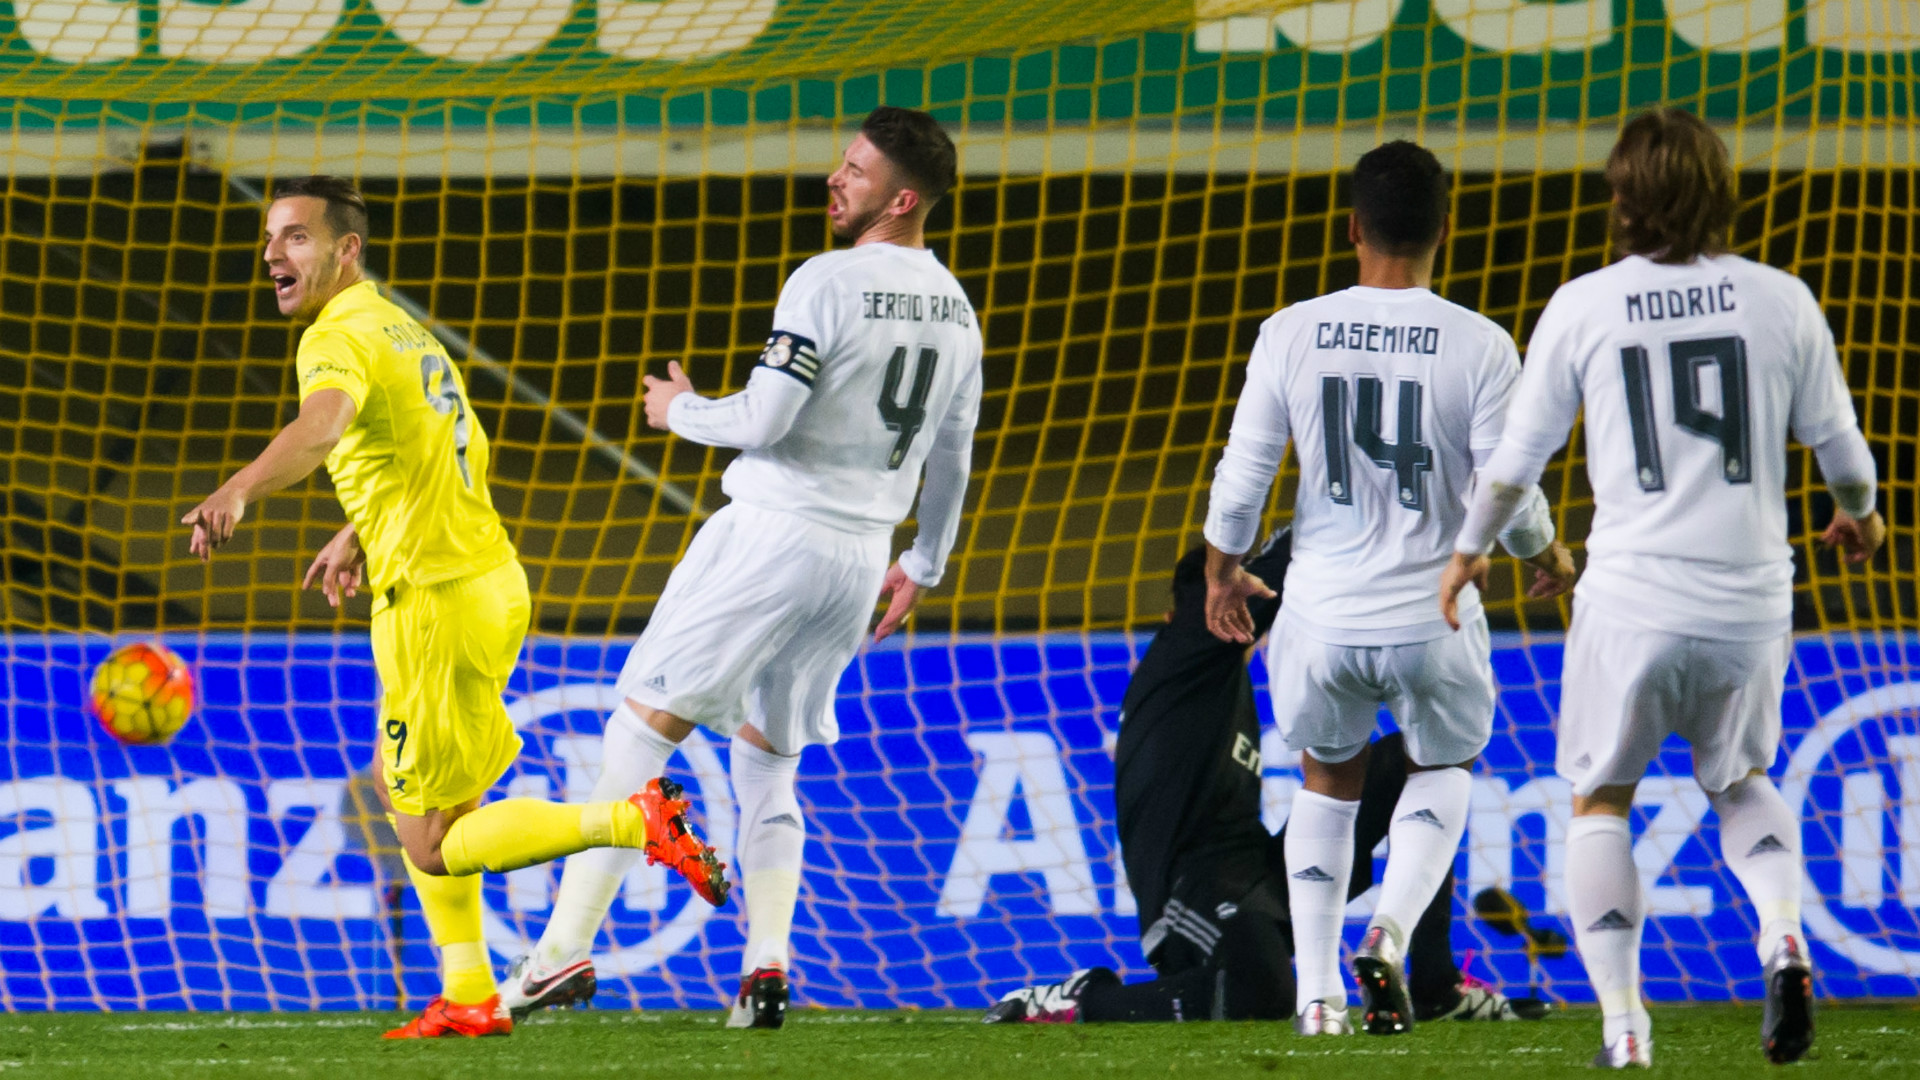 Can unbeaten Villarreal compete against Real Madrid and their 100% record?